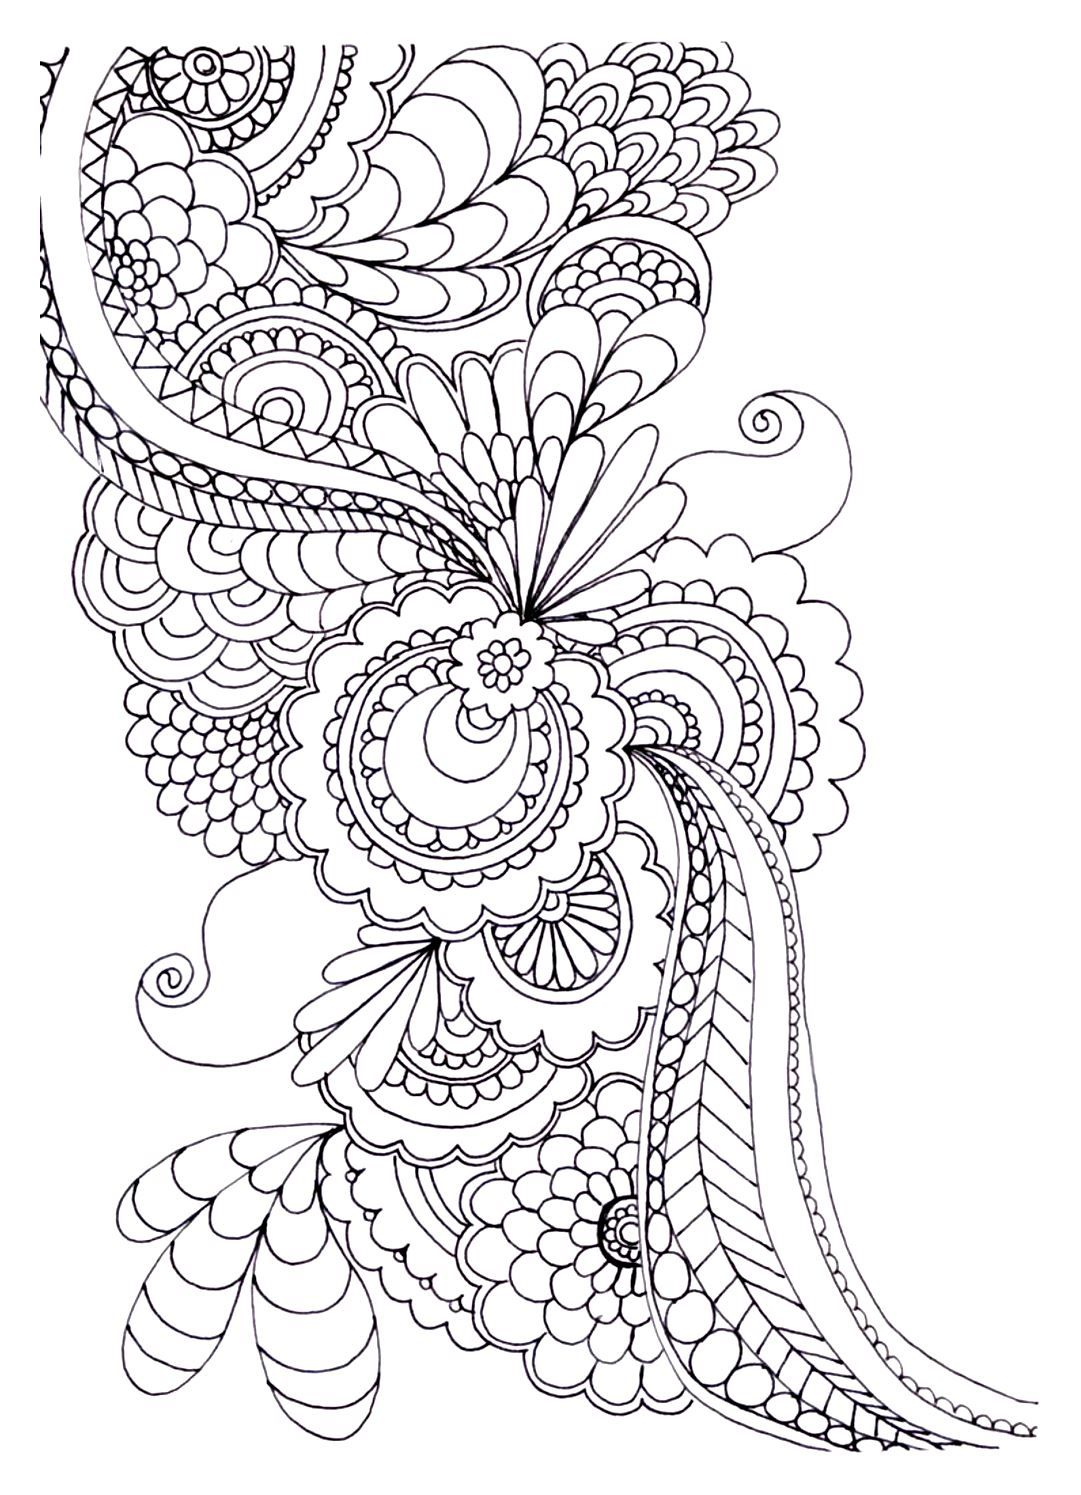 Galerie De Coloriages Gratuits Coloriage Adulte Zen Anti Stress A